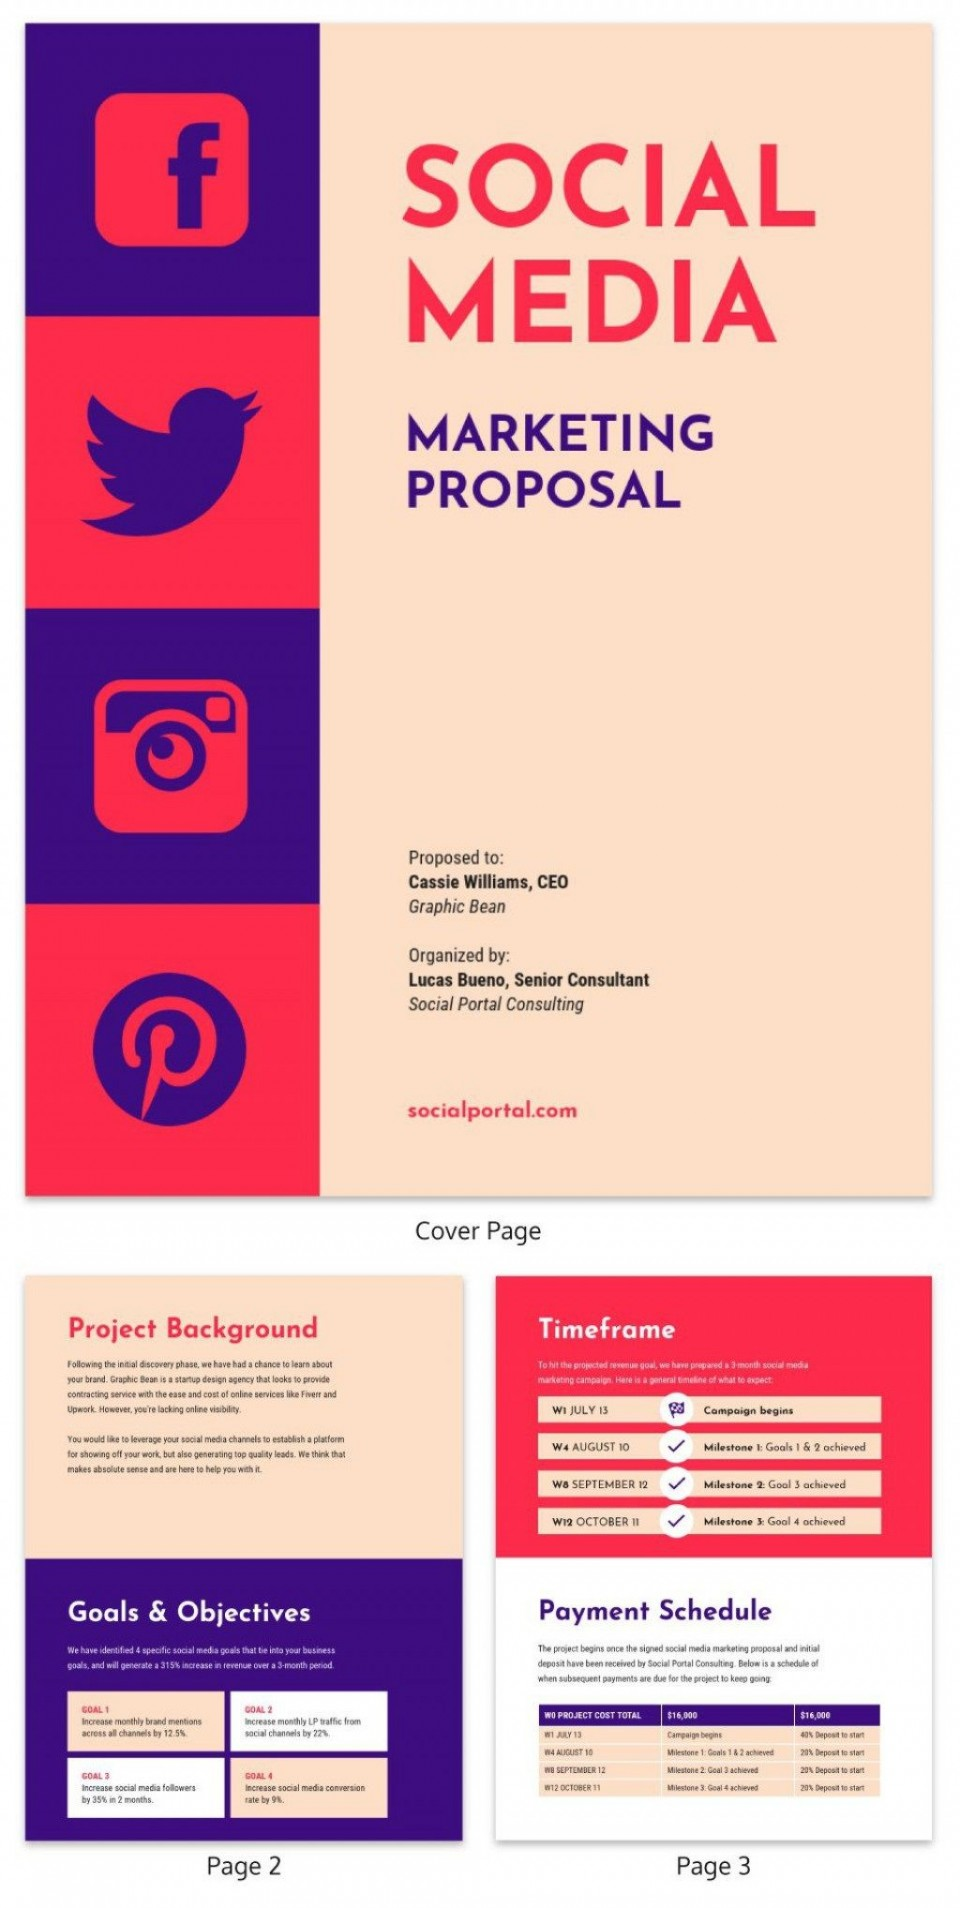 009 Phenomenal Social Media Proposal Template 2019 Highest Quality 960